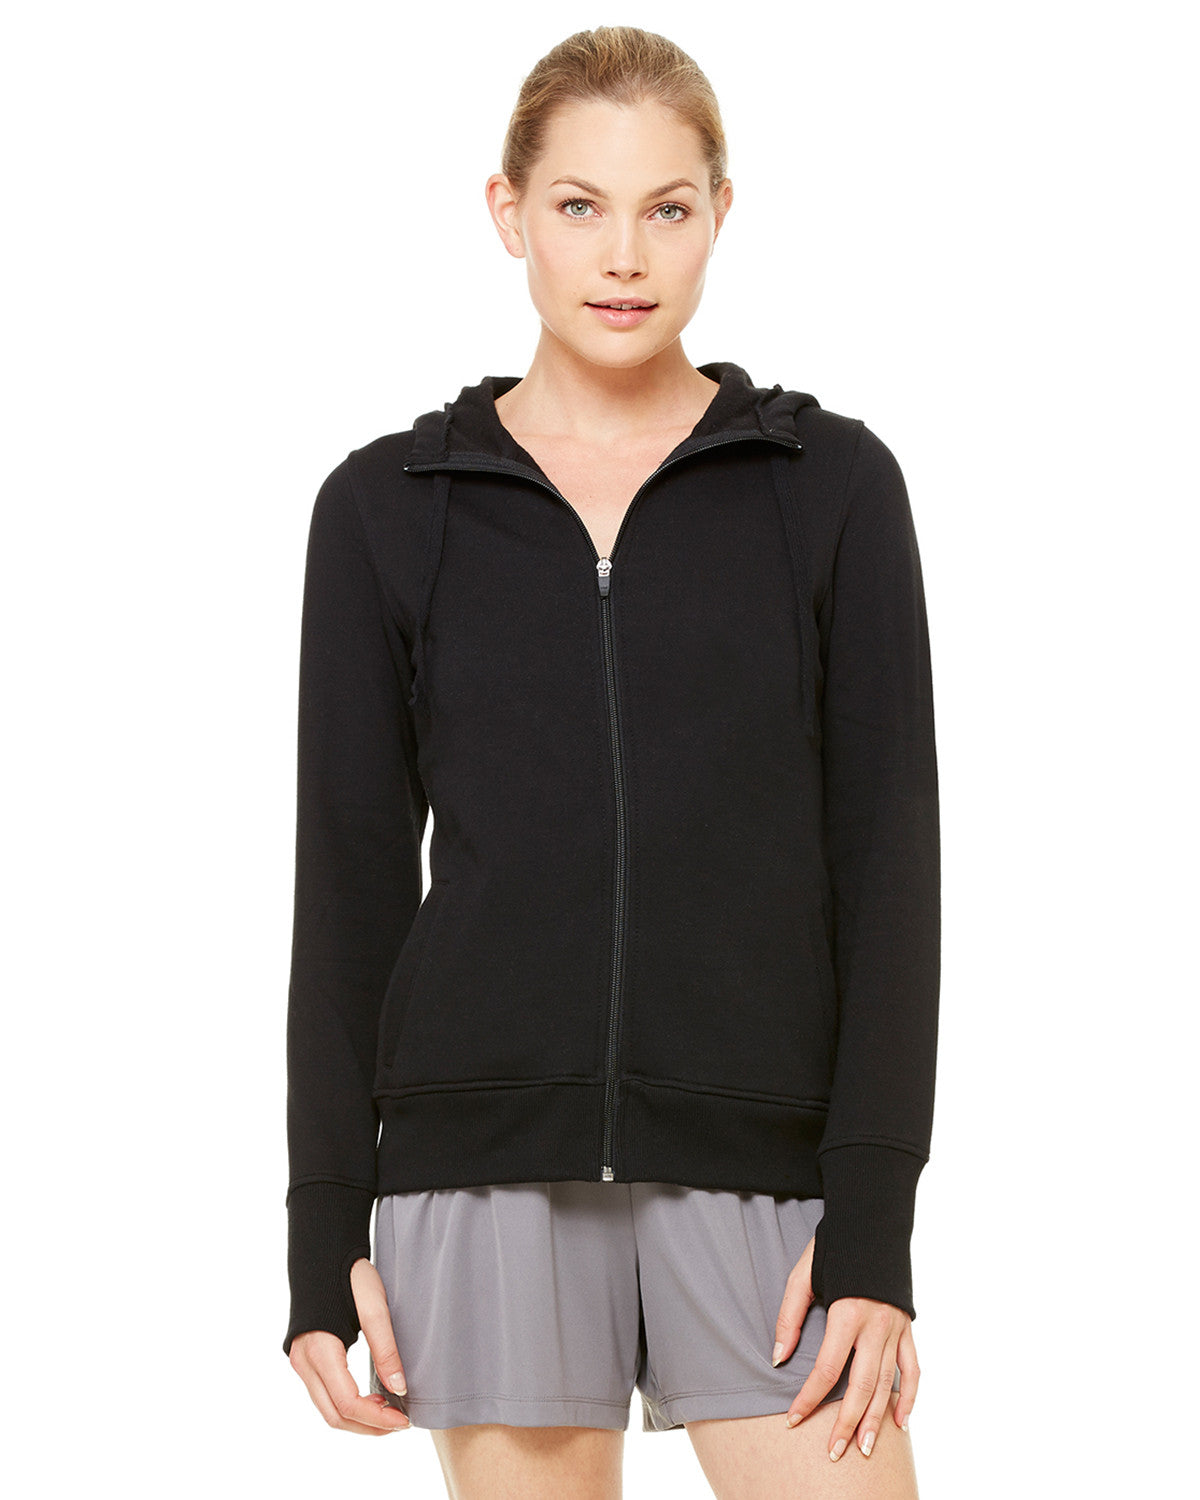 Ladies Performance Fleece Hooded Full-zip